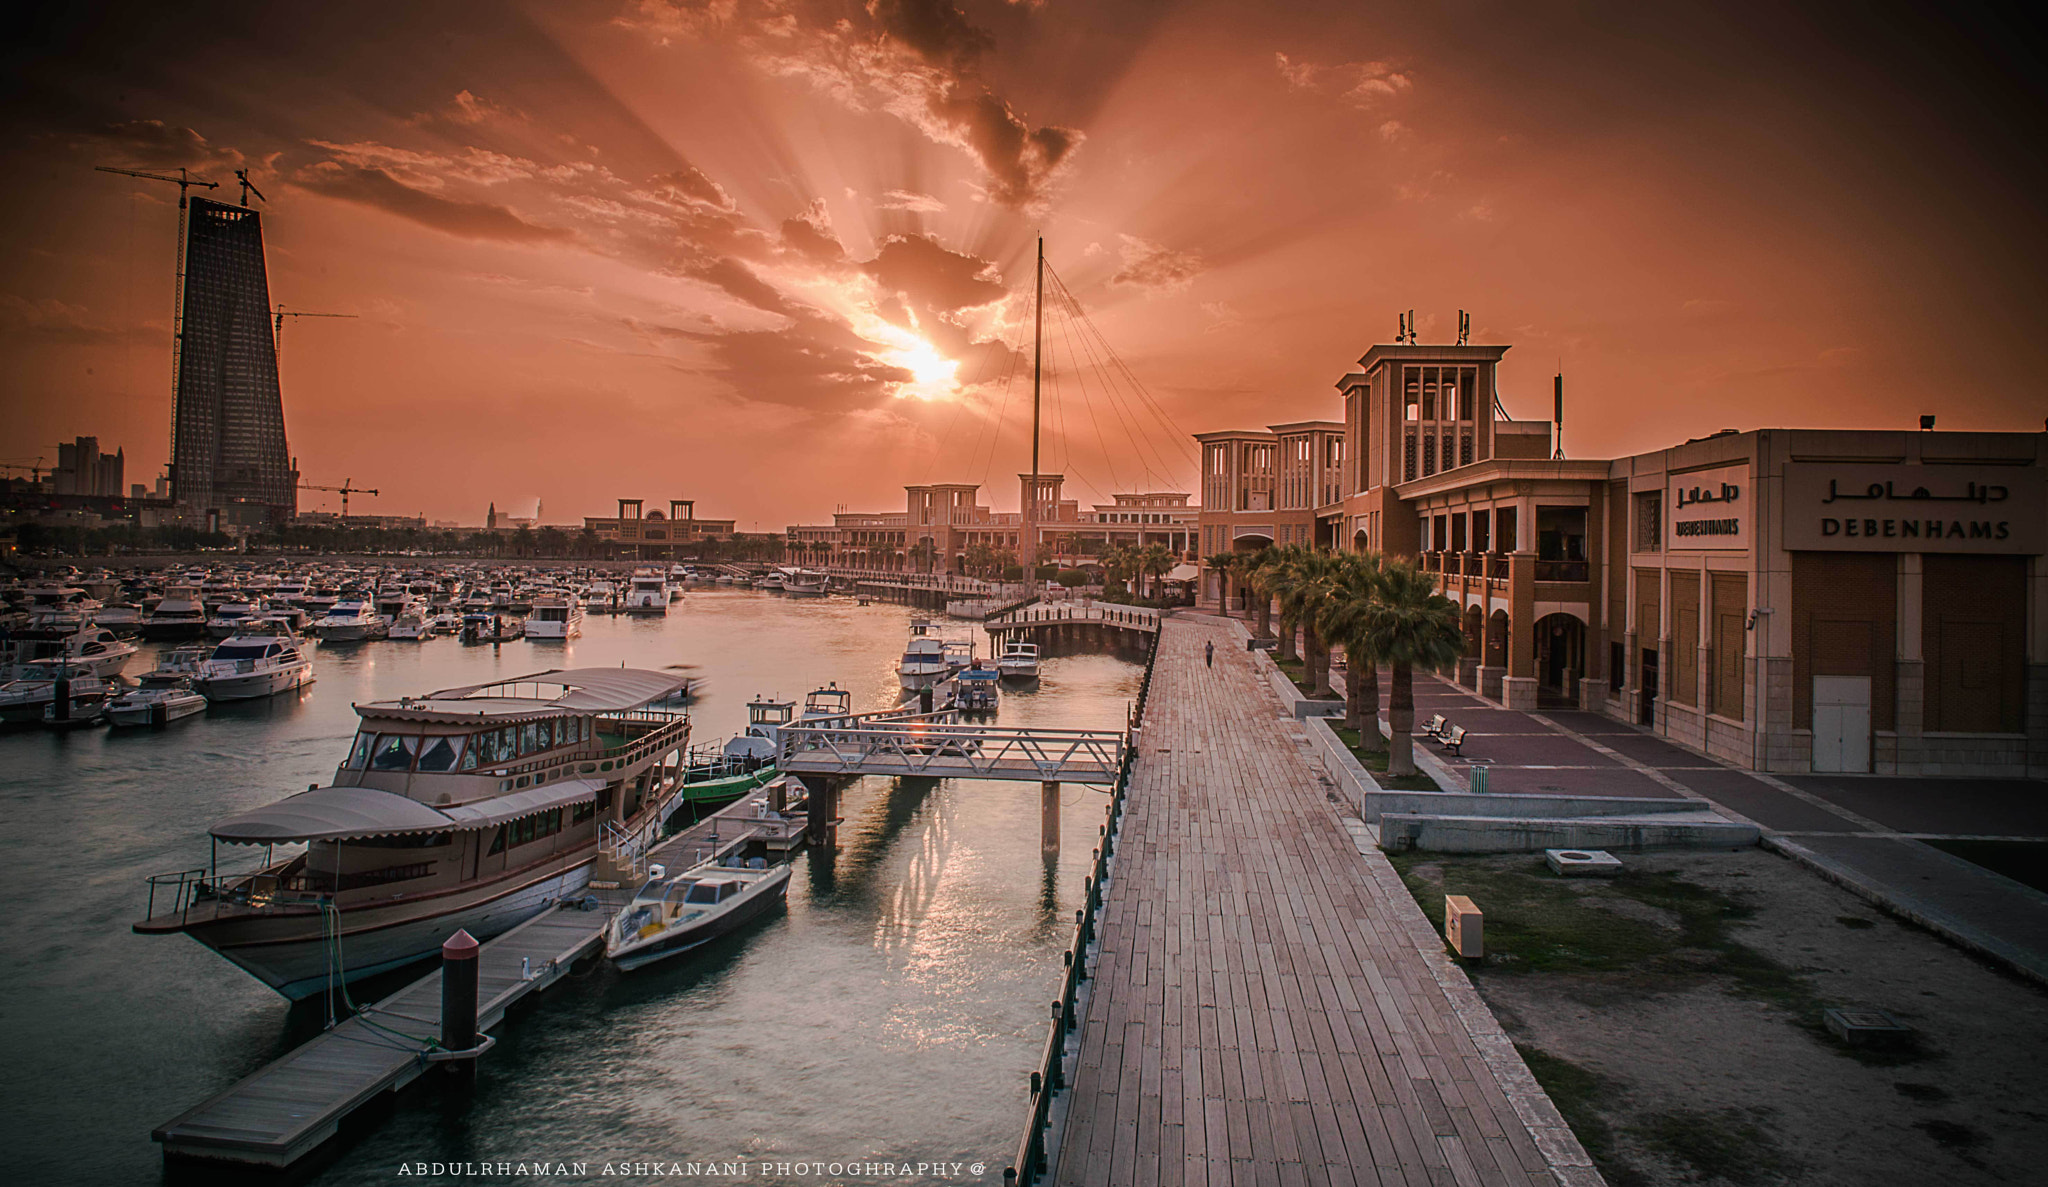 Photograph SHARQ MARIN by Abdulrahman Ashkanani on 500px